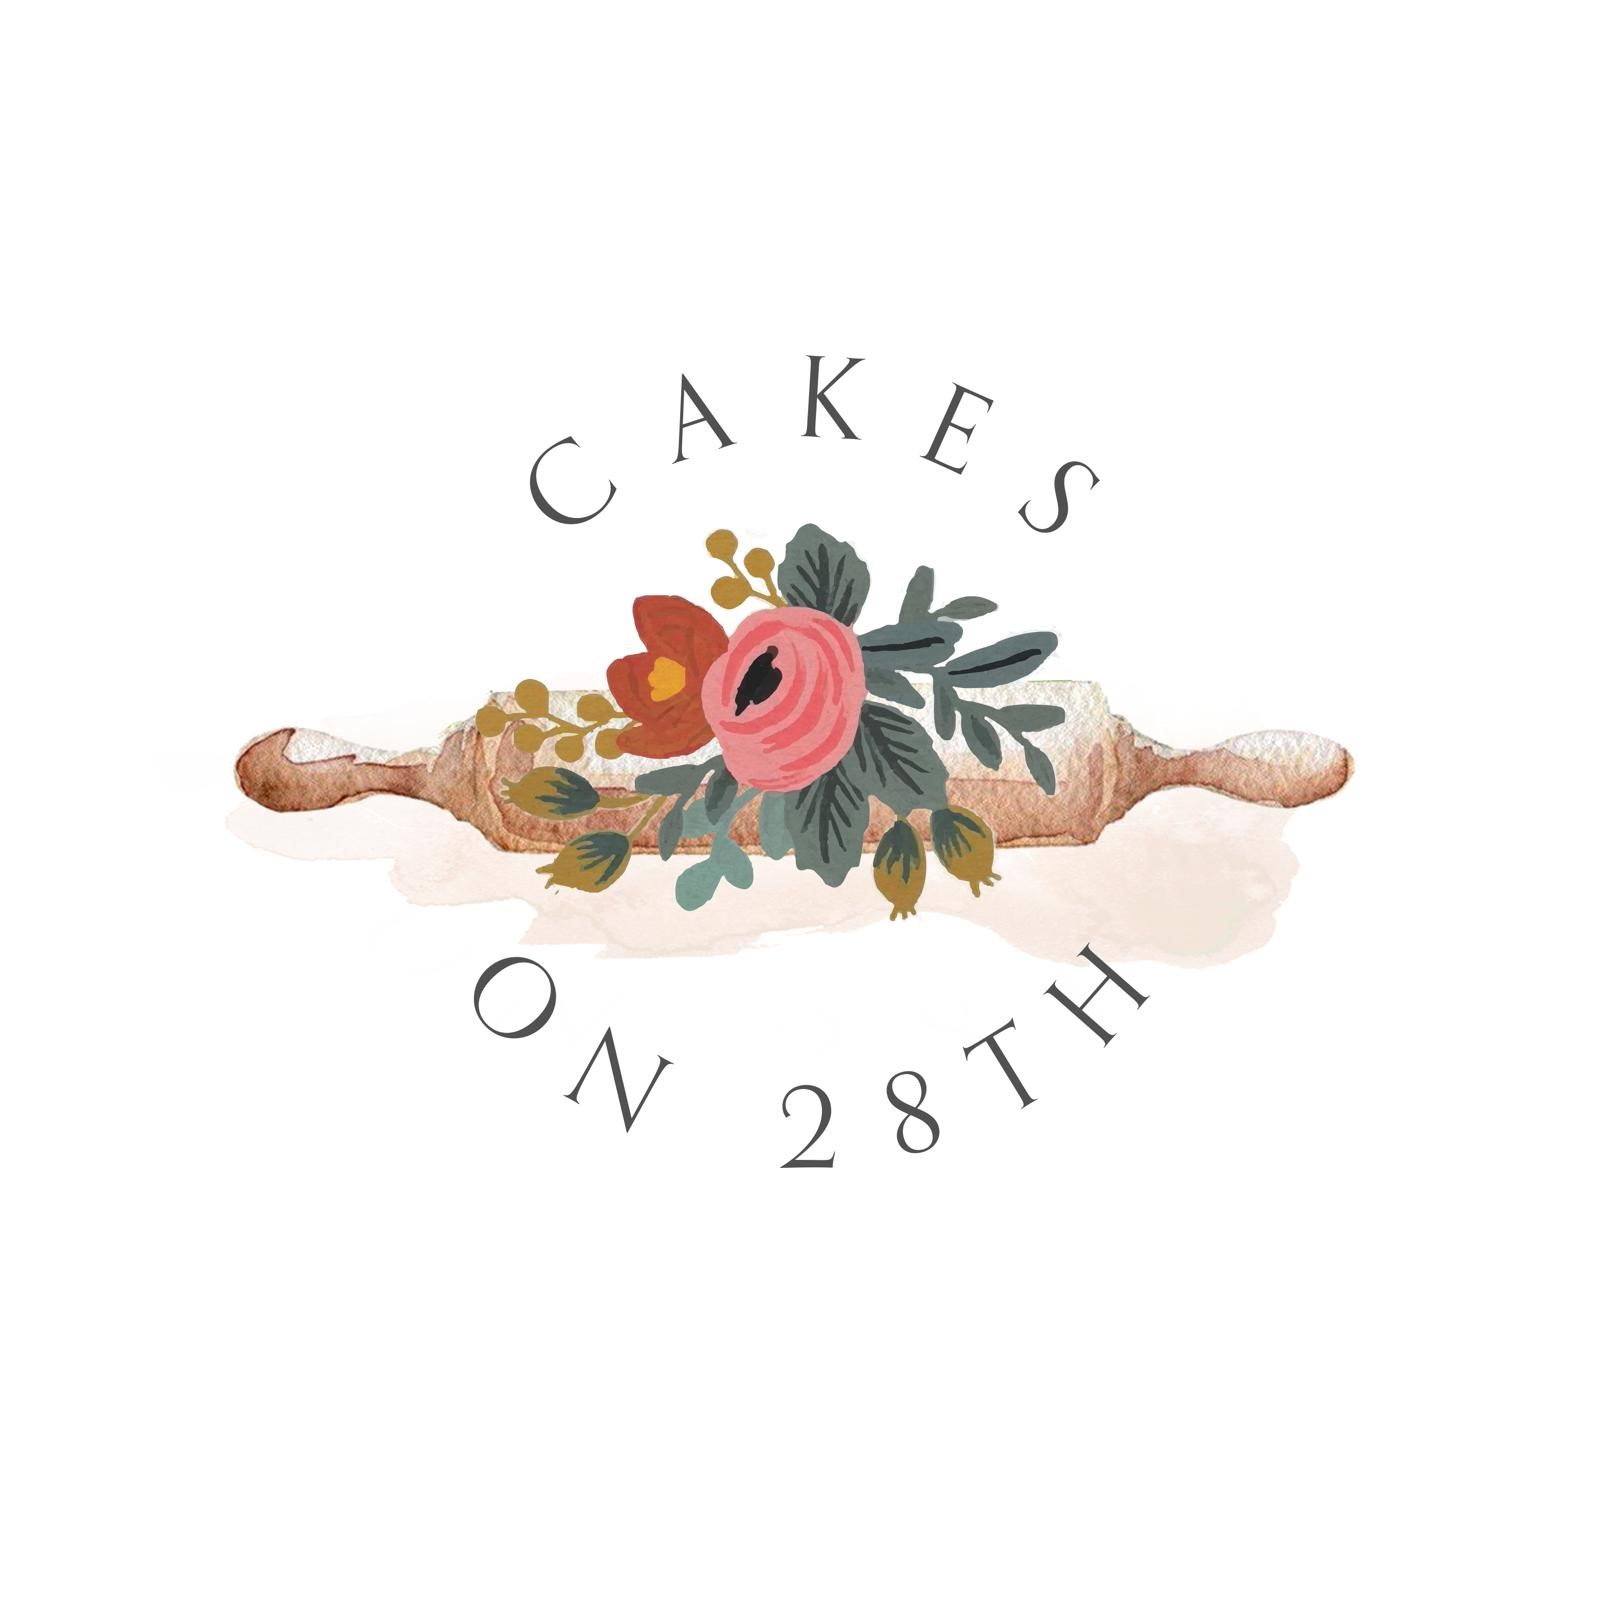 Cakes on 28th